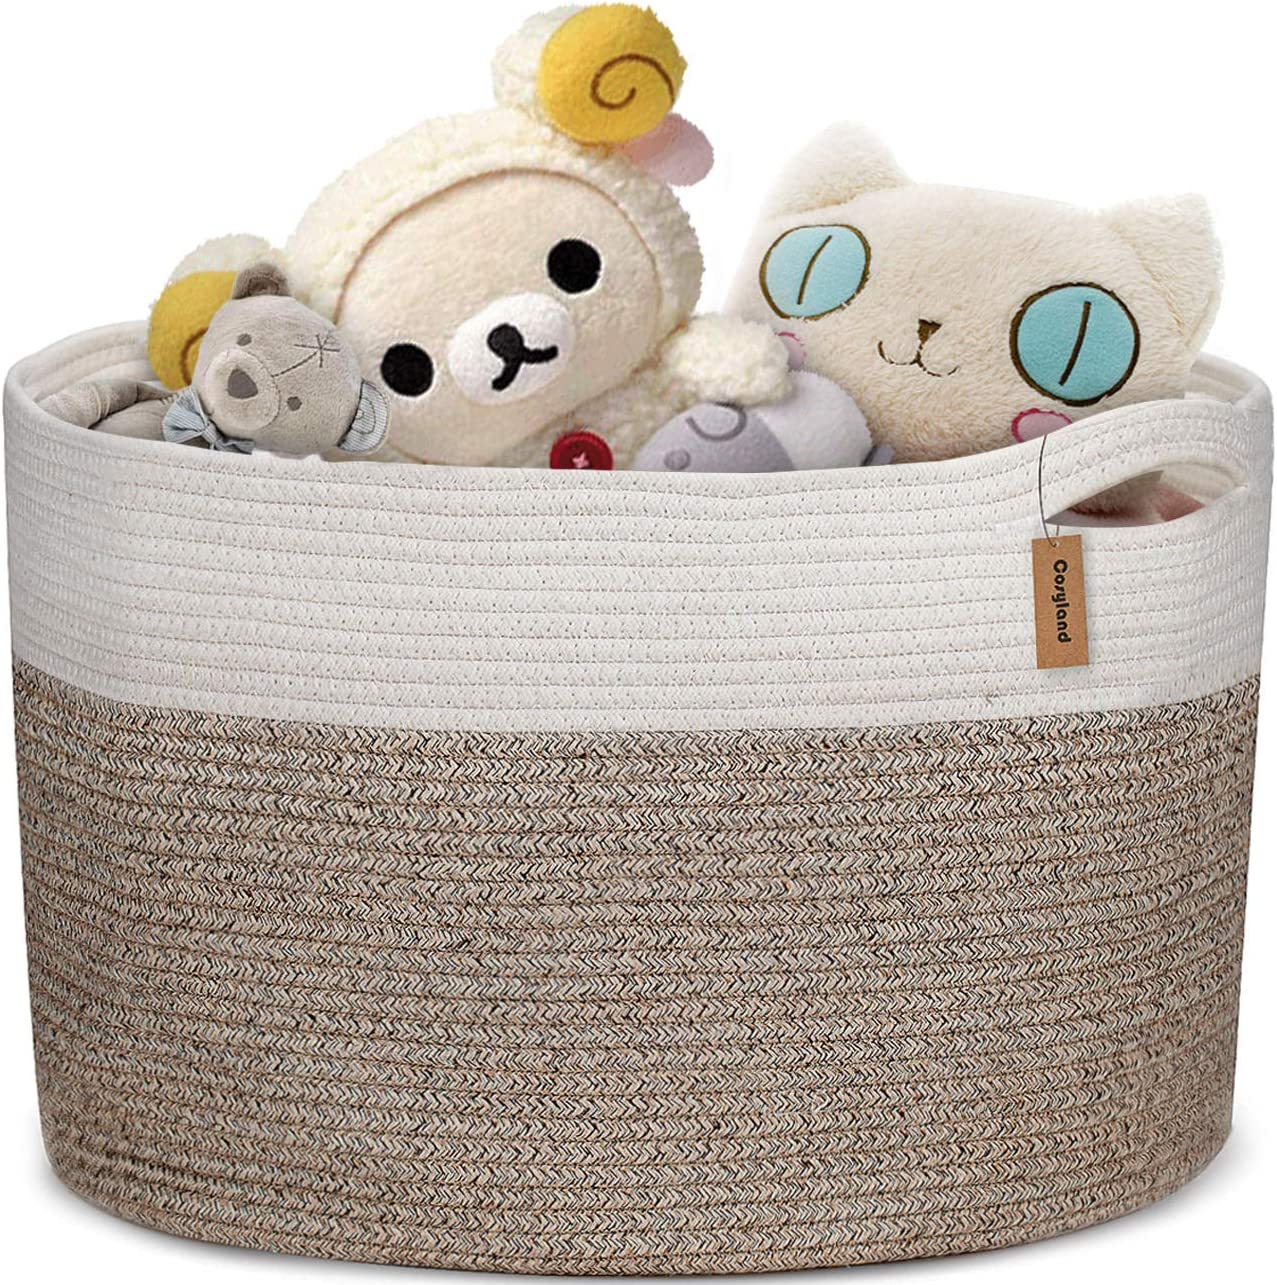 COSYLAND Extra Large Woven Storage Basket 17x15 Cotton Rope Organizer Baby Laundry Baskets for Blanket Toys Towels Nursery Hamper Bin with Handle